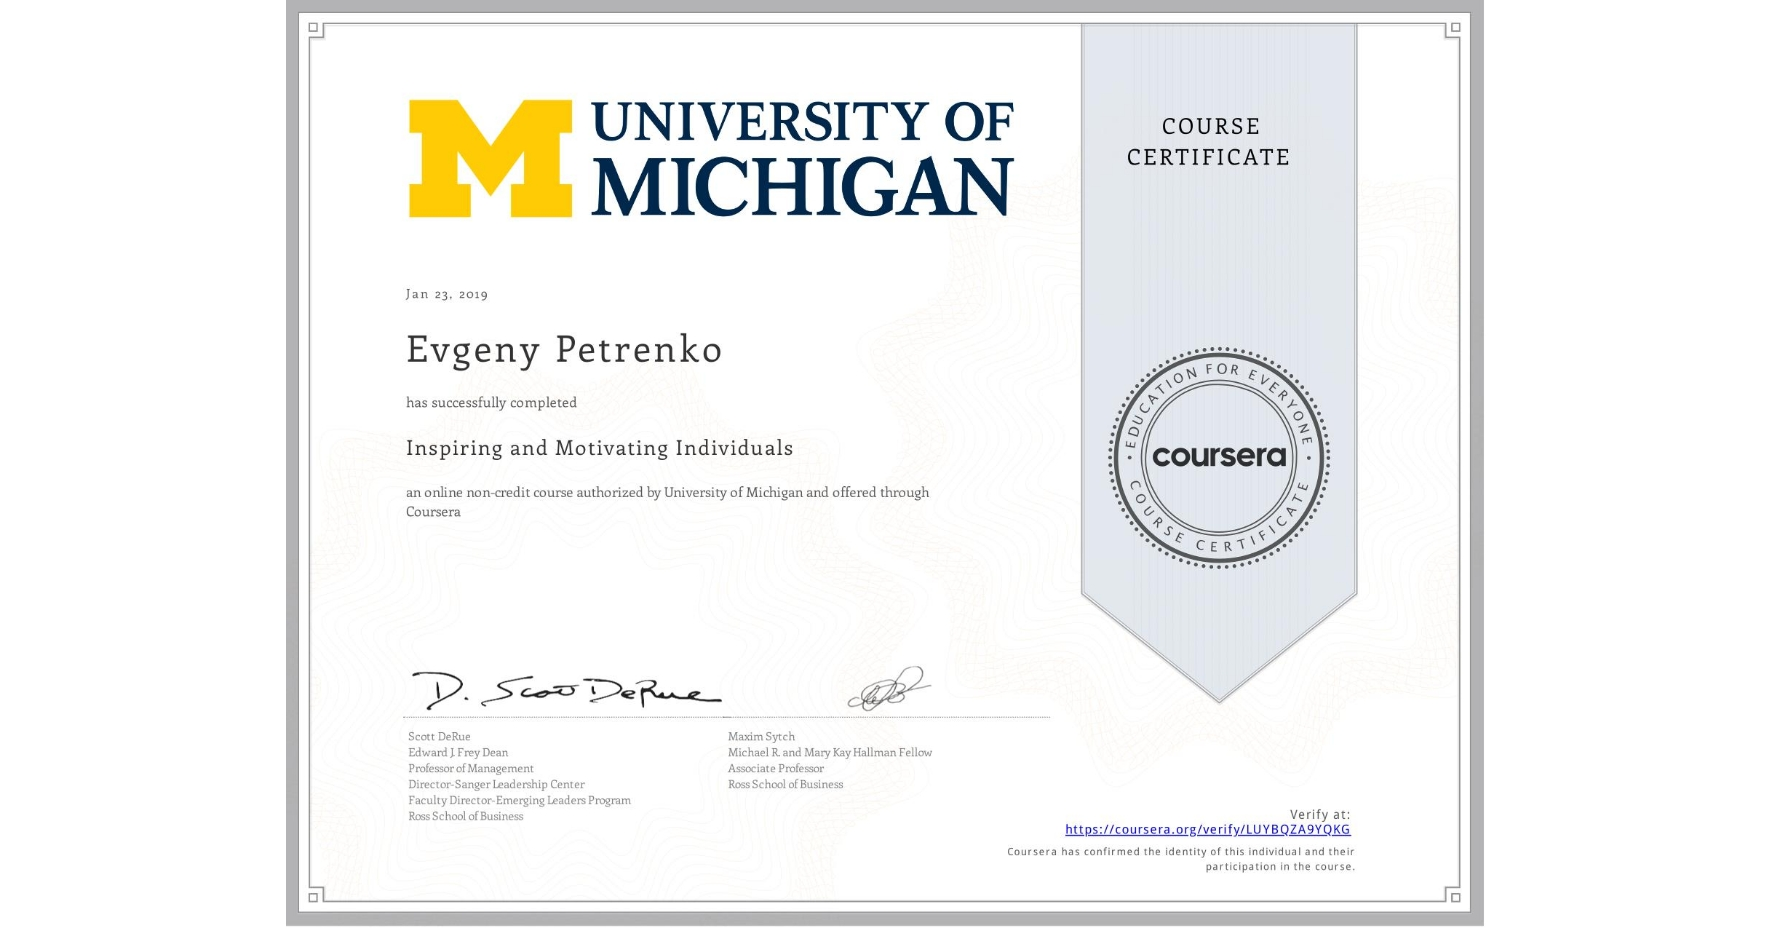 View certificate for Evgeny Petrenko, Inspiring and Motivating Individuals, an online non-credit course authorized by University of Michigan and offered through Coursera